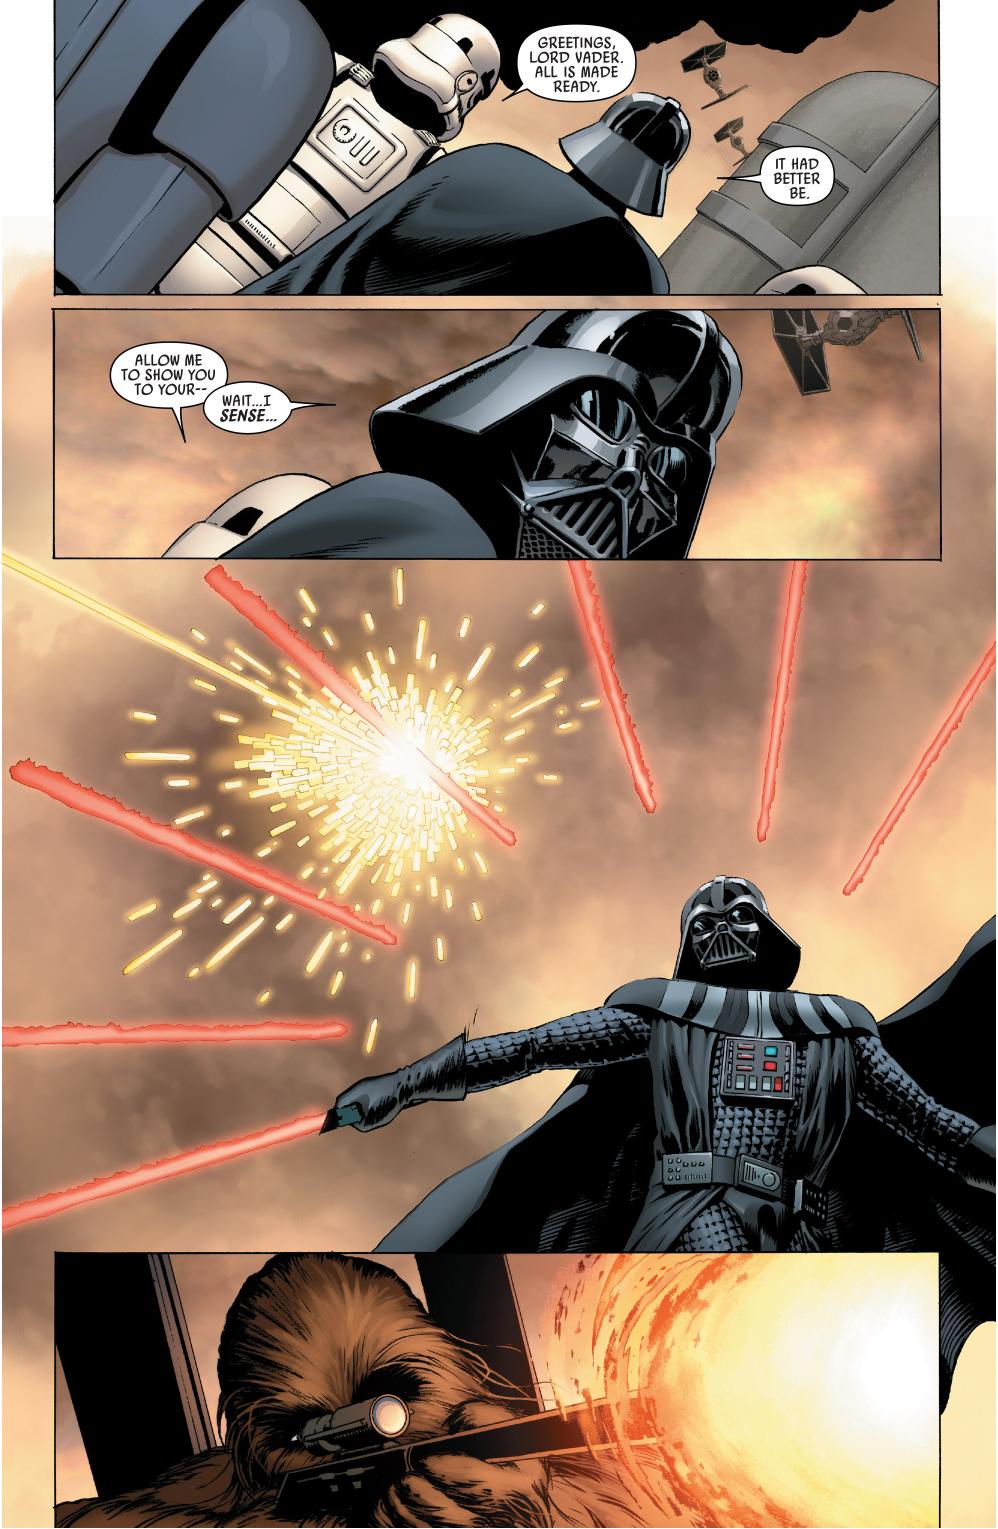 chewbacca attacks darth vader